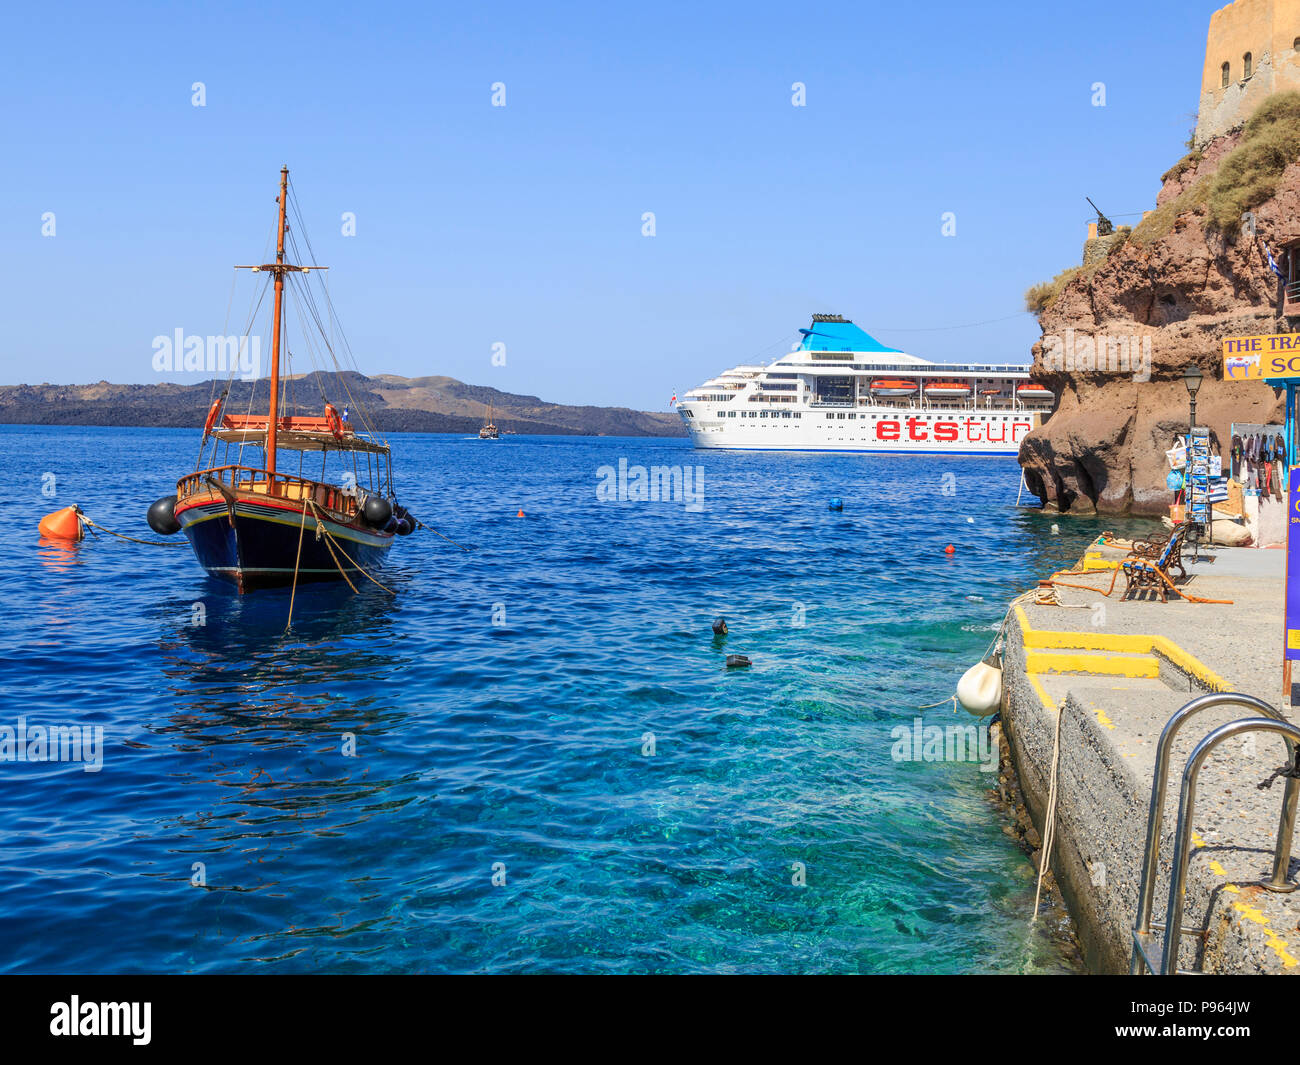 Santorini, Greece - July 6, 2018 : View of ETS tur cruise ship from  port of Fira, Santorini island, Greece - Stock Image